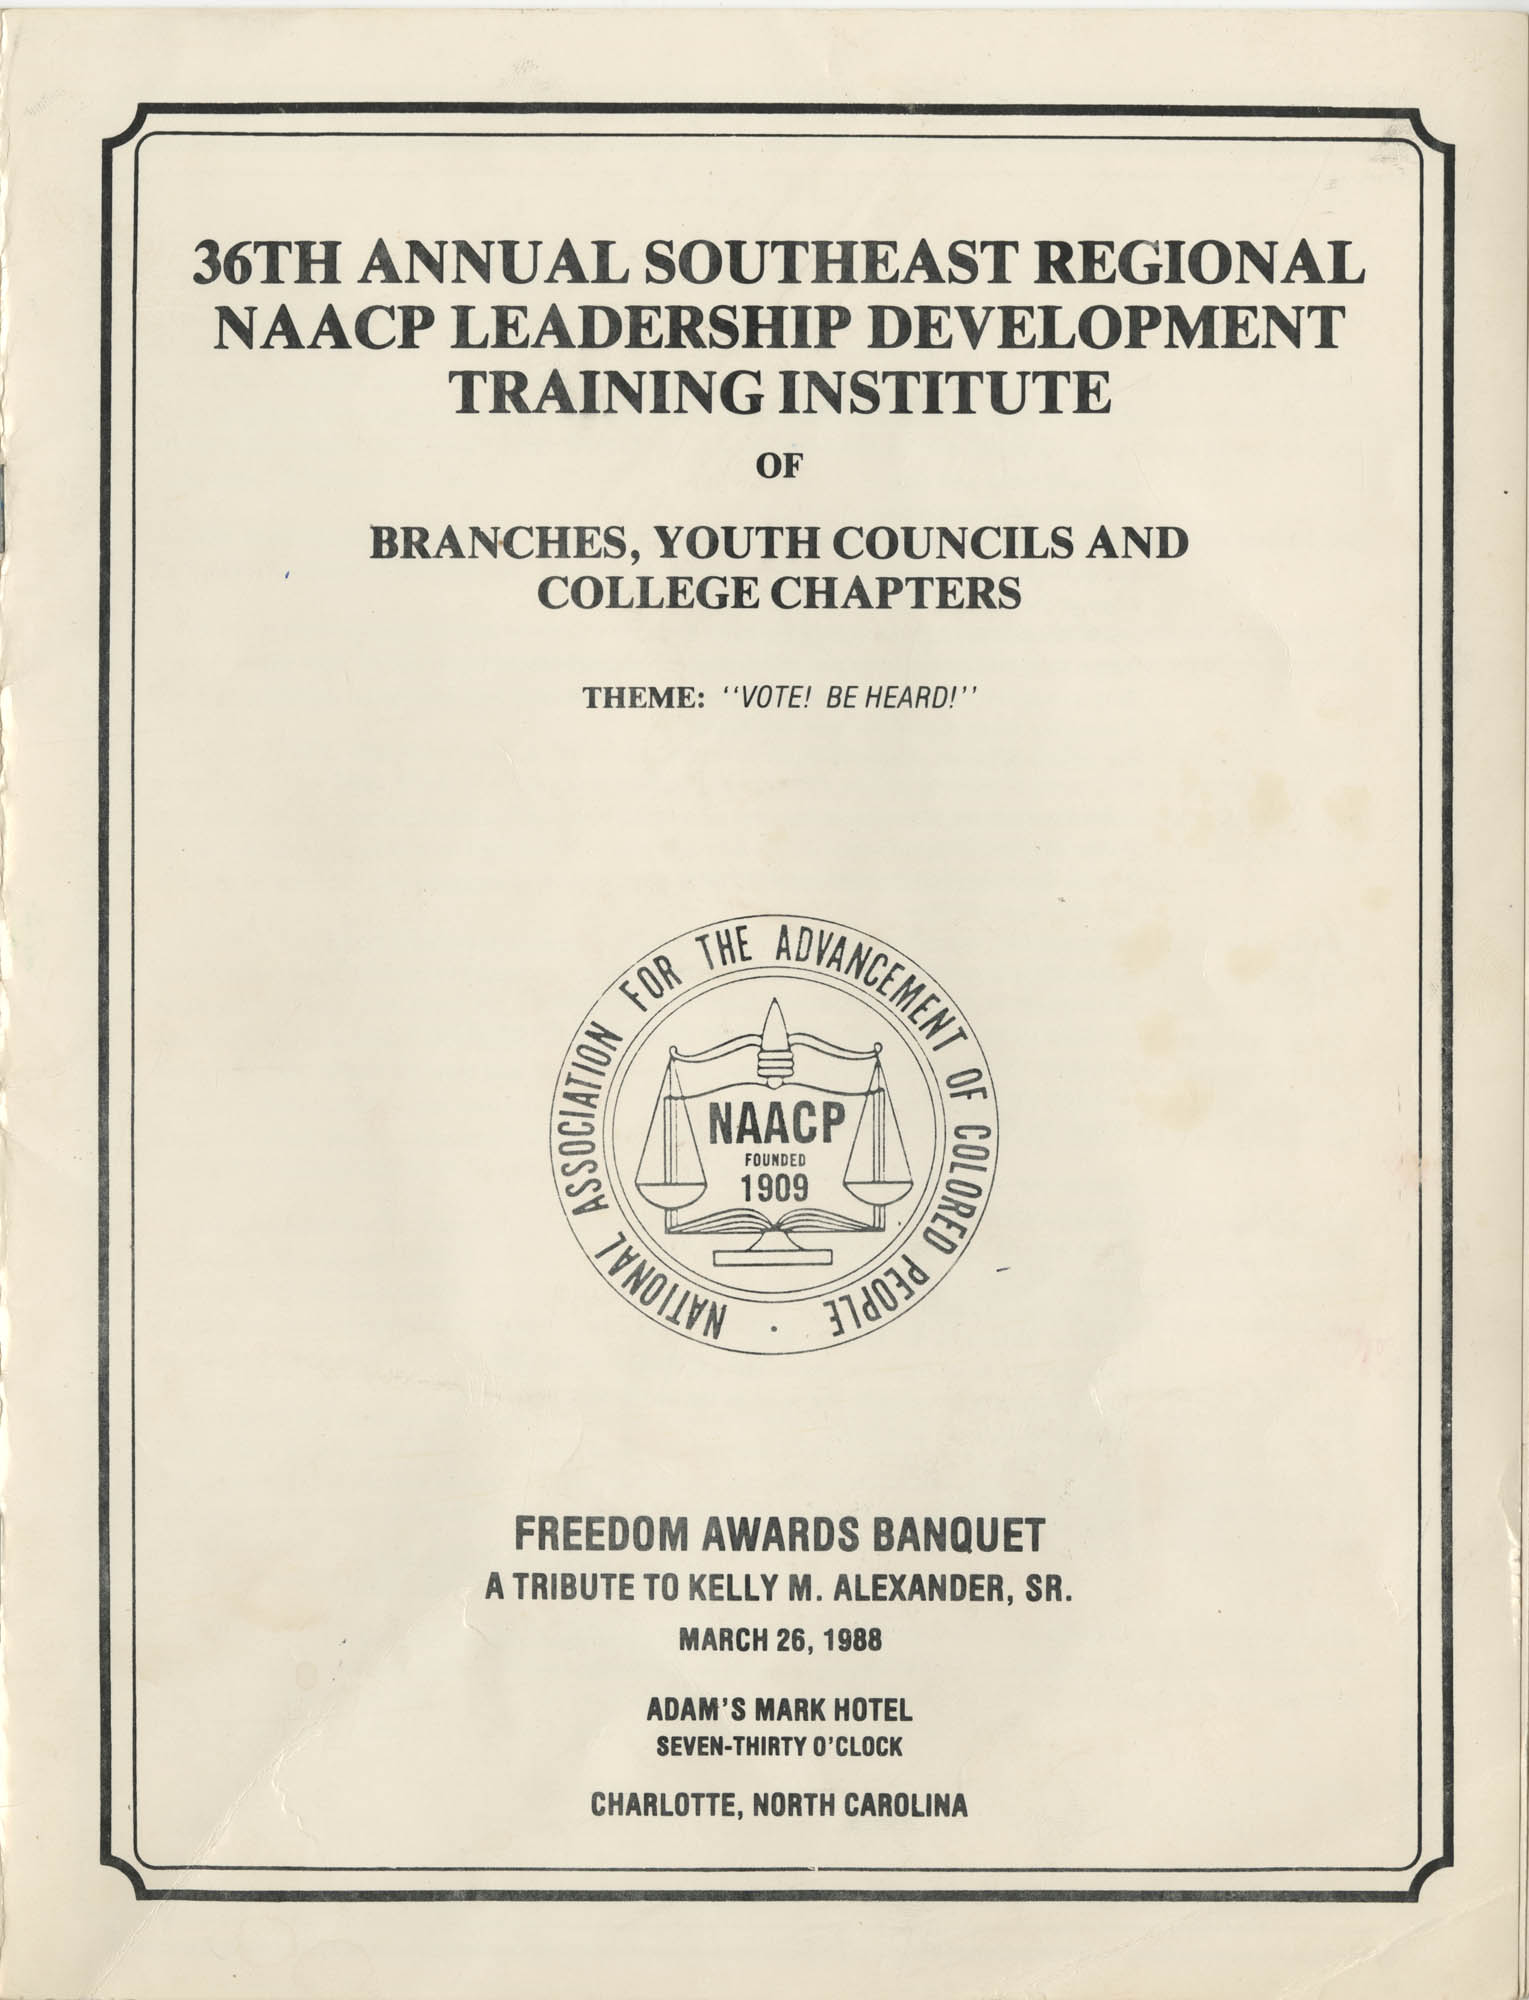 36th Annual Southeast Regional NAACP Leadership Development Training Institute, Front Cover Exterior